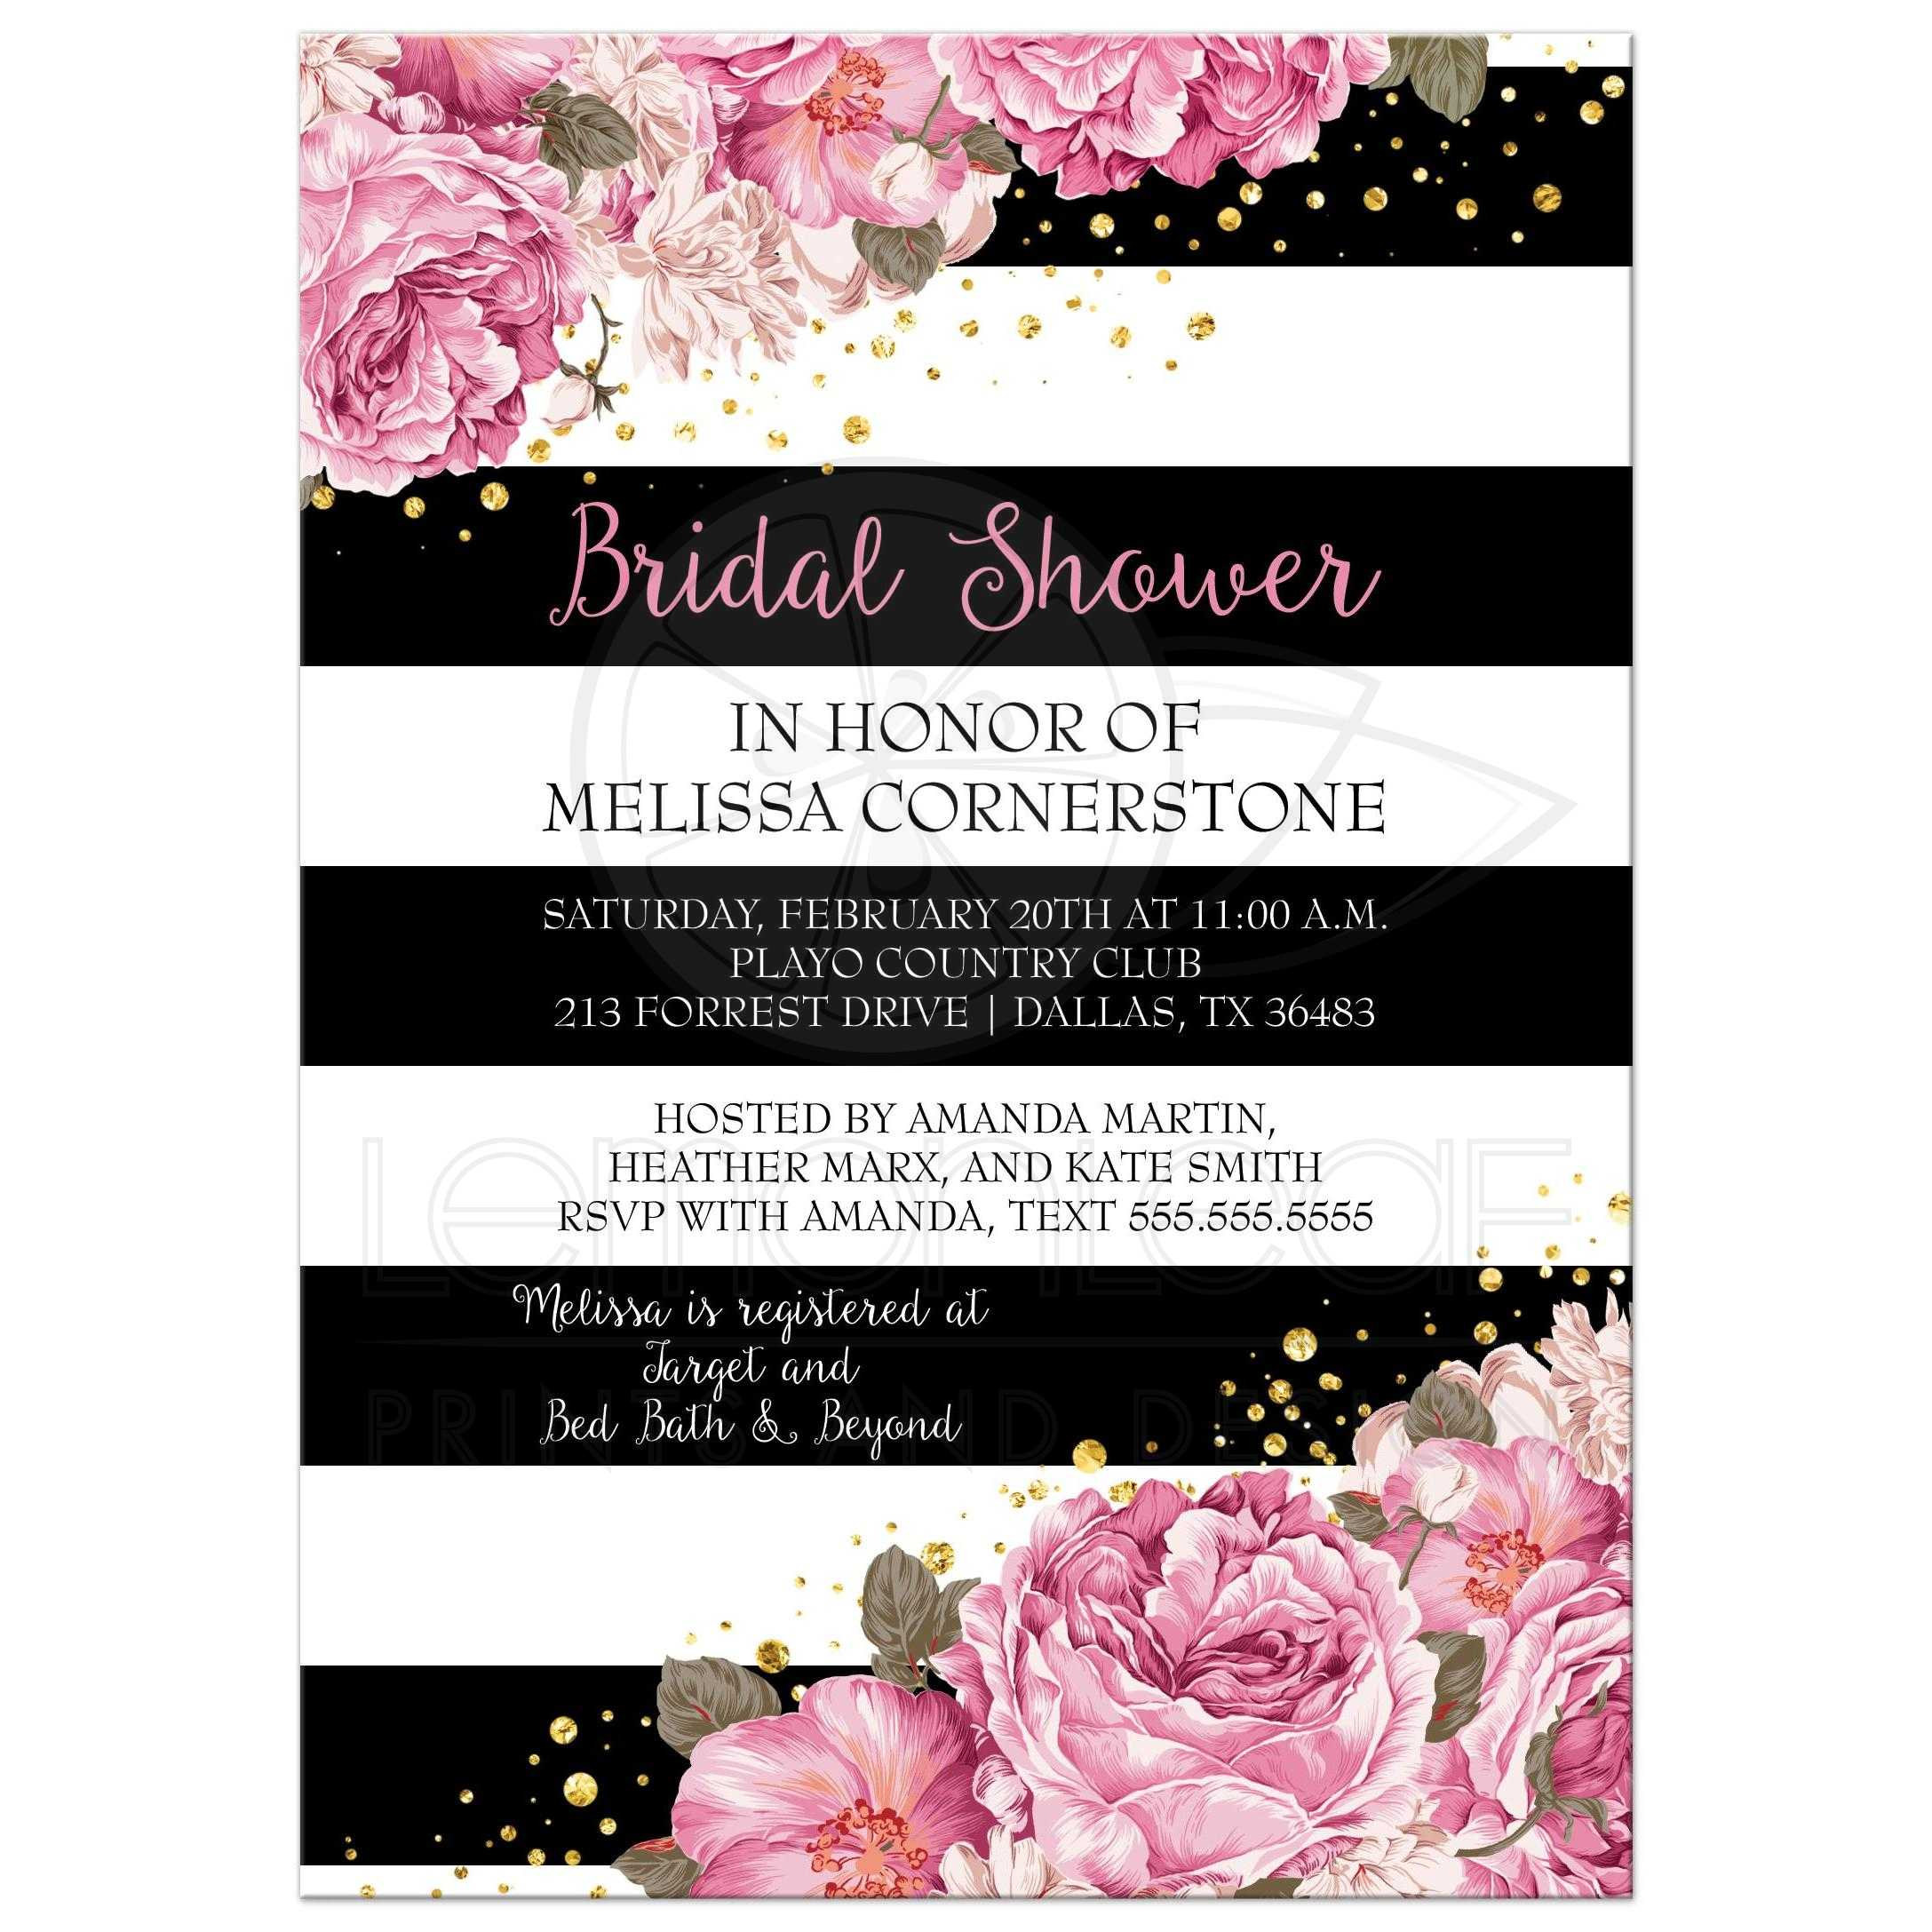 Bridal Shower Invitation - Black Stripes, Pink Flowers and Gold